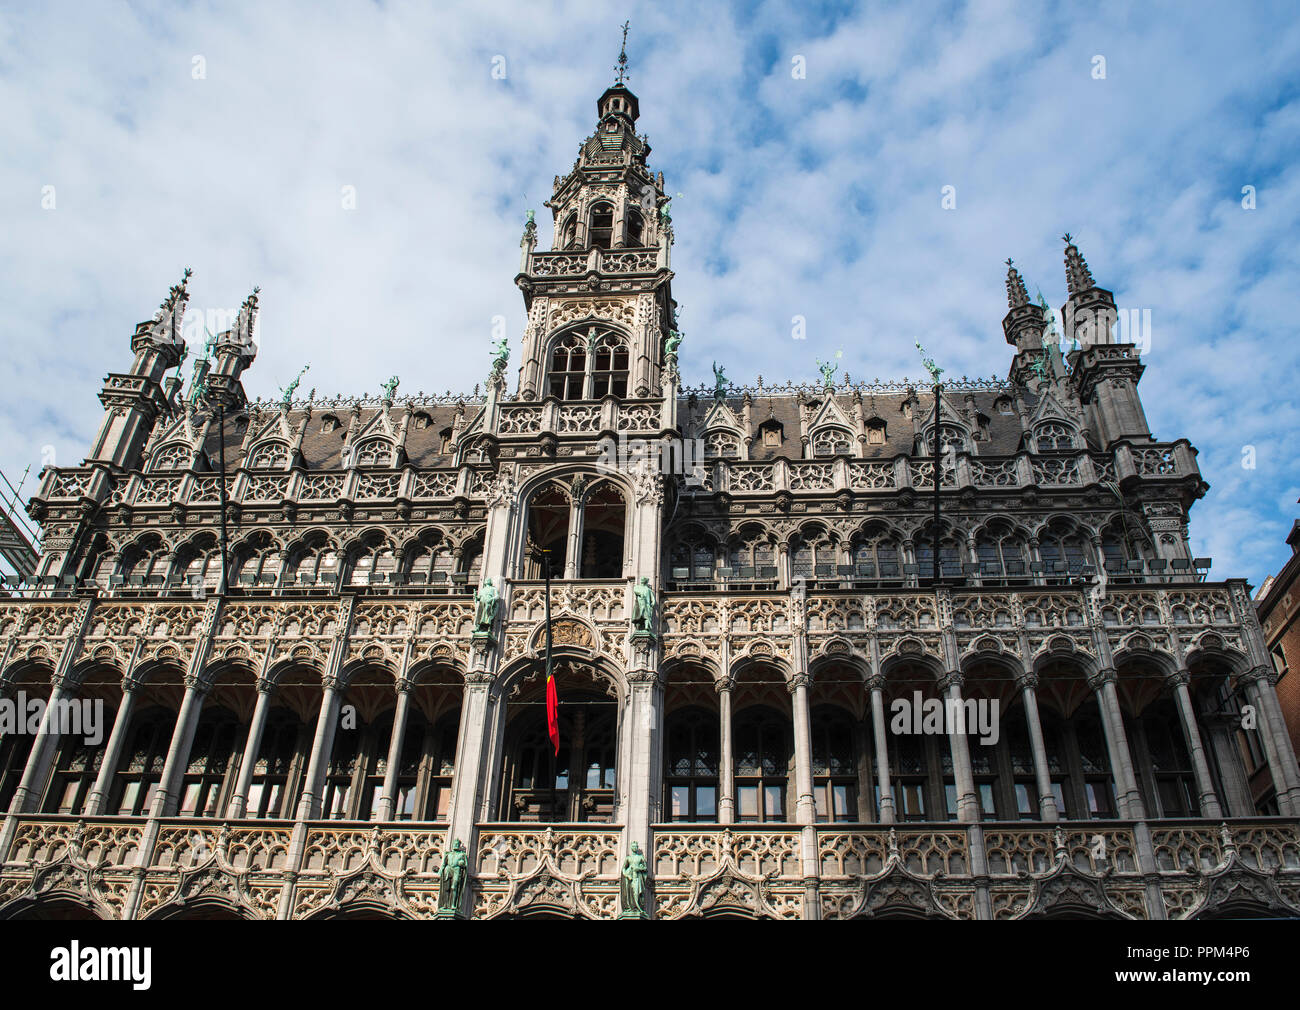 Museum of the City of Brussels is a museum on the Grand Place square in Brussels, Belgium. It is dedicated to the history and folklore. - Stock Image